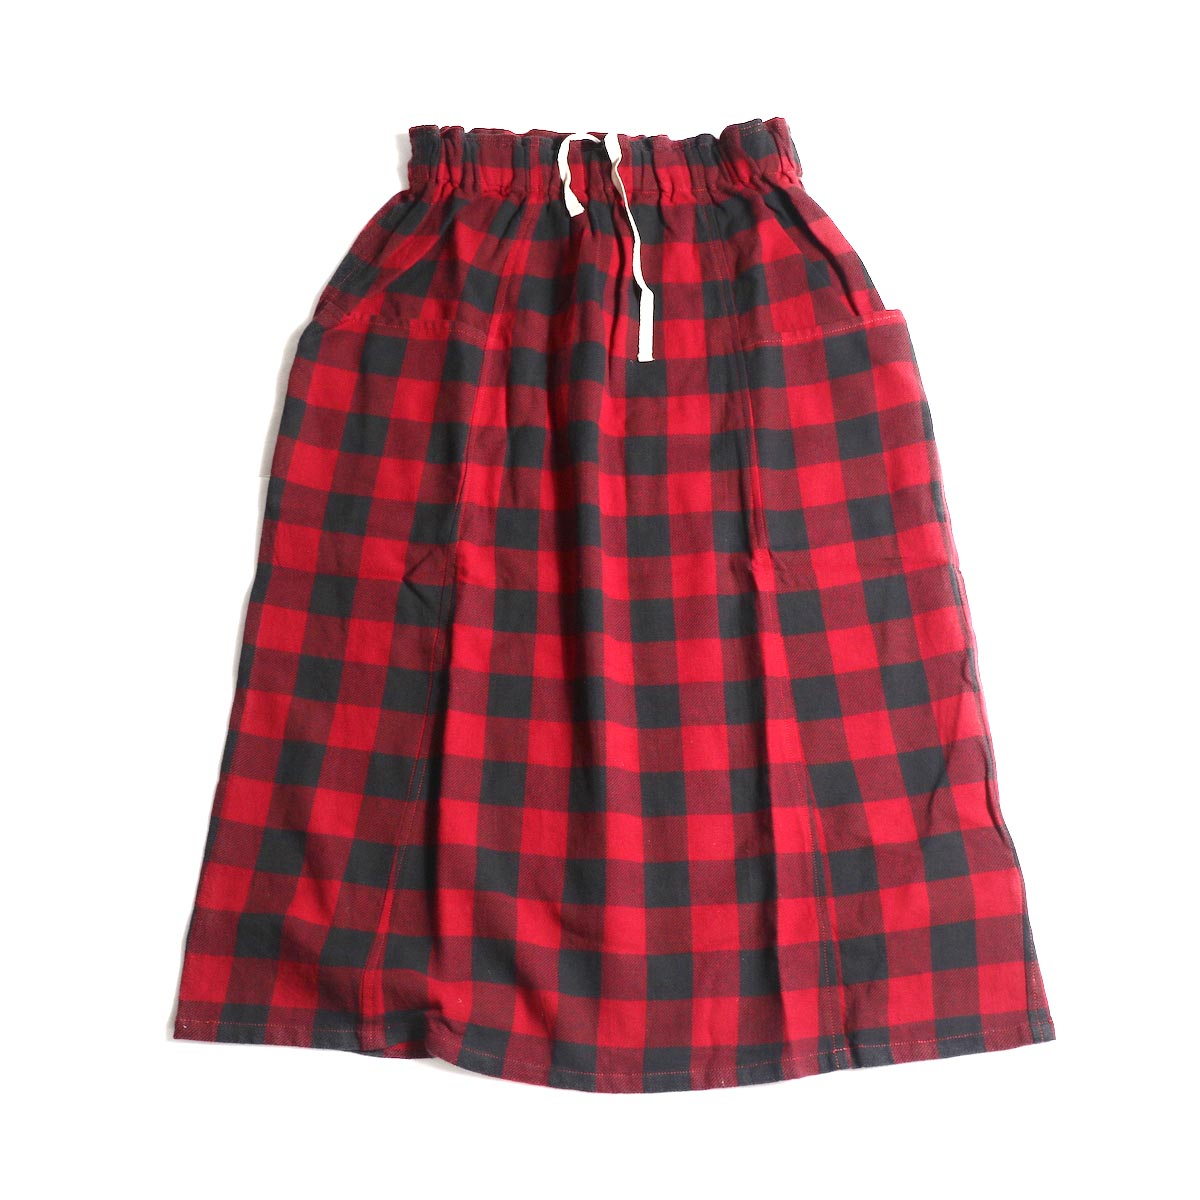 SOUTH2 WEST8 / Army String Skirt -Plaid Twill (Red/Black)